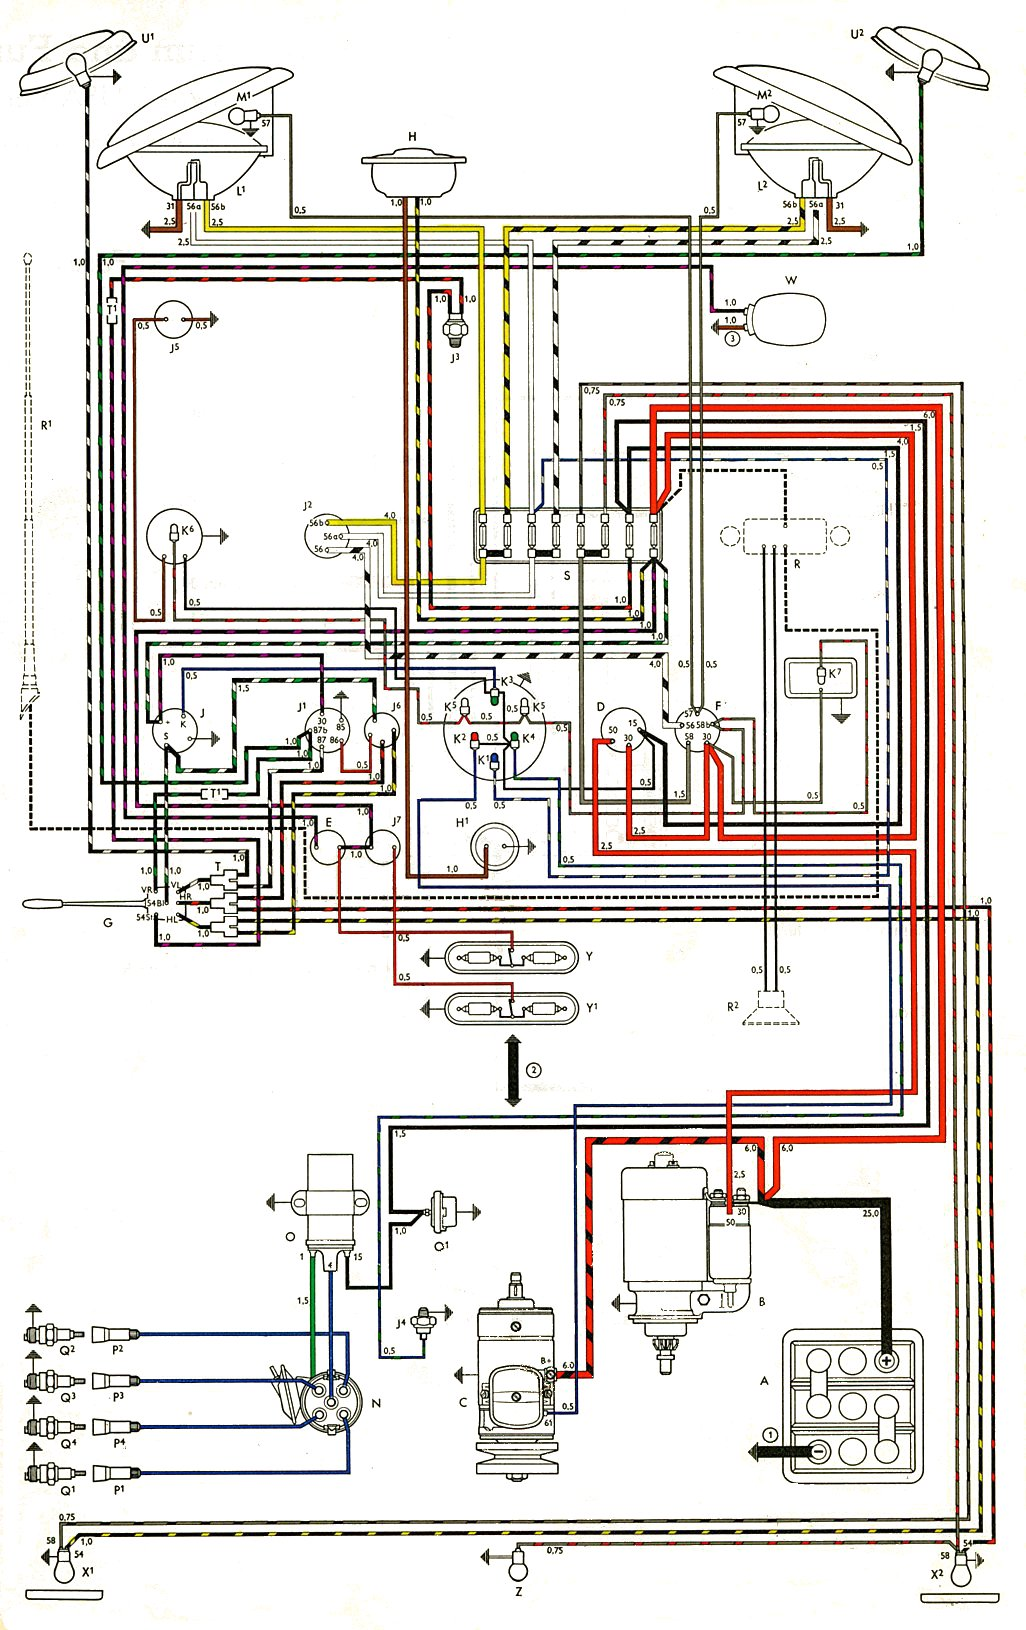 1968 volkswagen type 2 wiring wiring diagrams page 1976 VW Bus Wiring Schematic